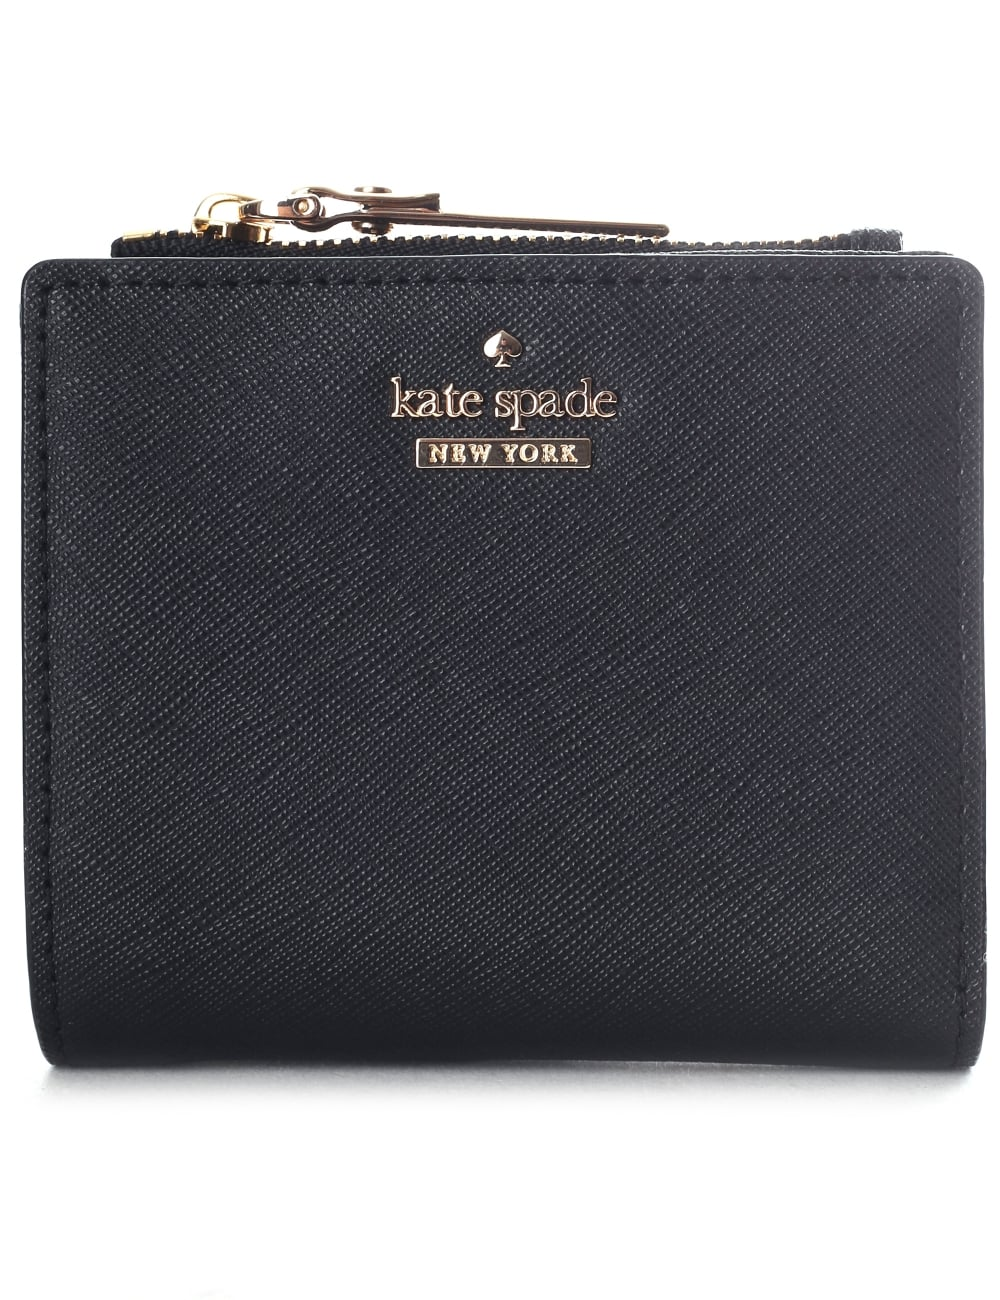 0fe1a4d0ccef3 KATE SPADE Cameron Street Adalyn Women s Small Wallet Black